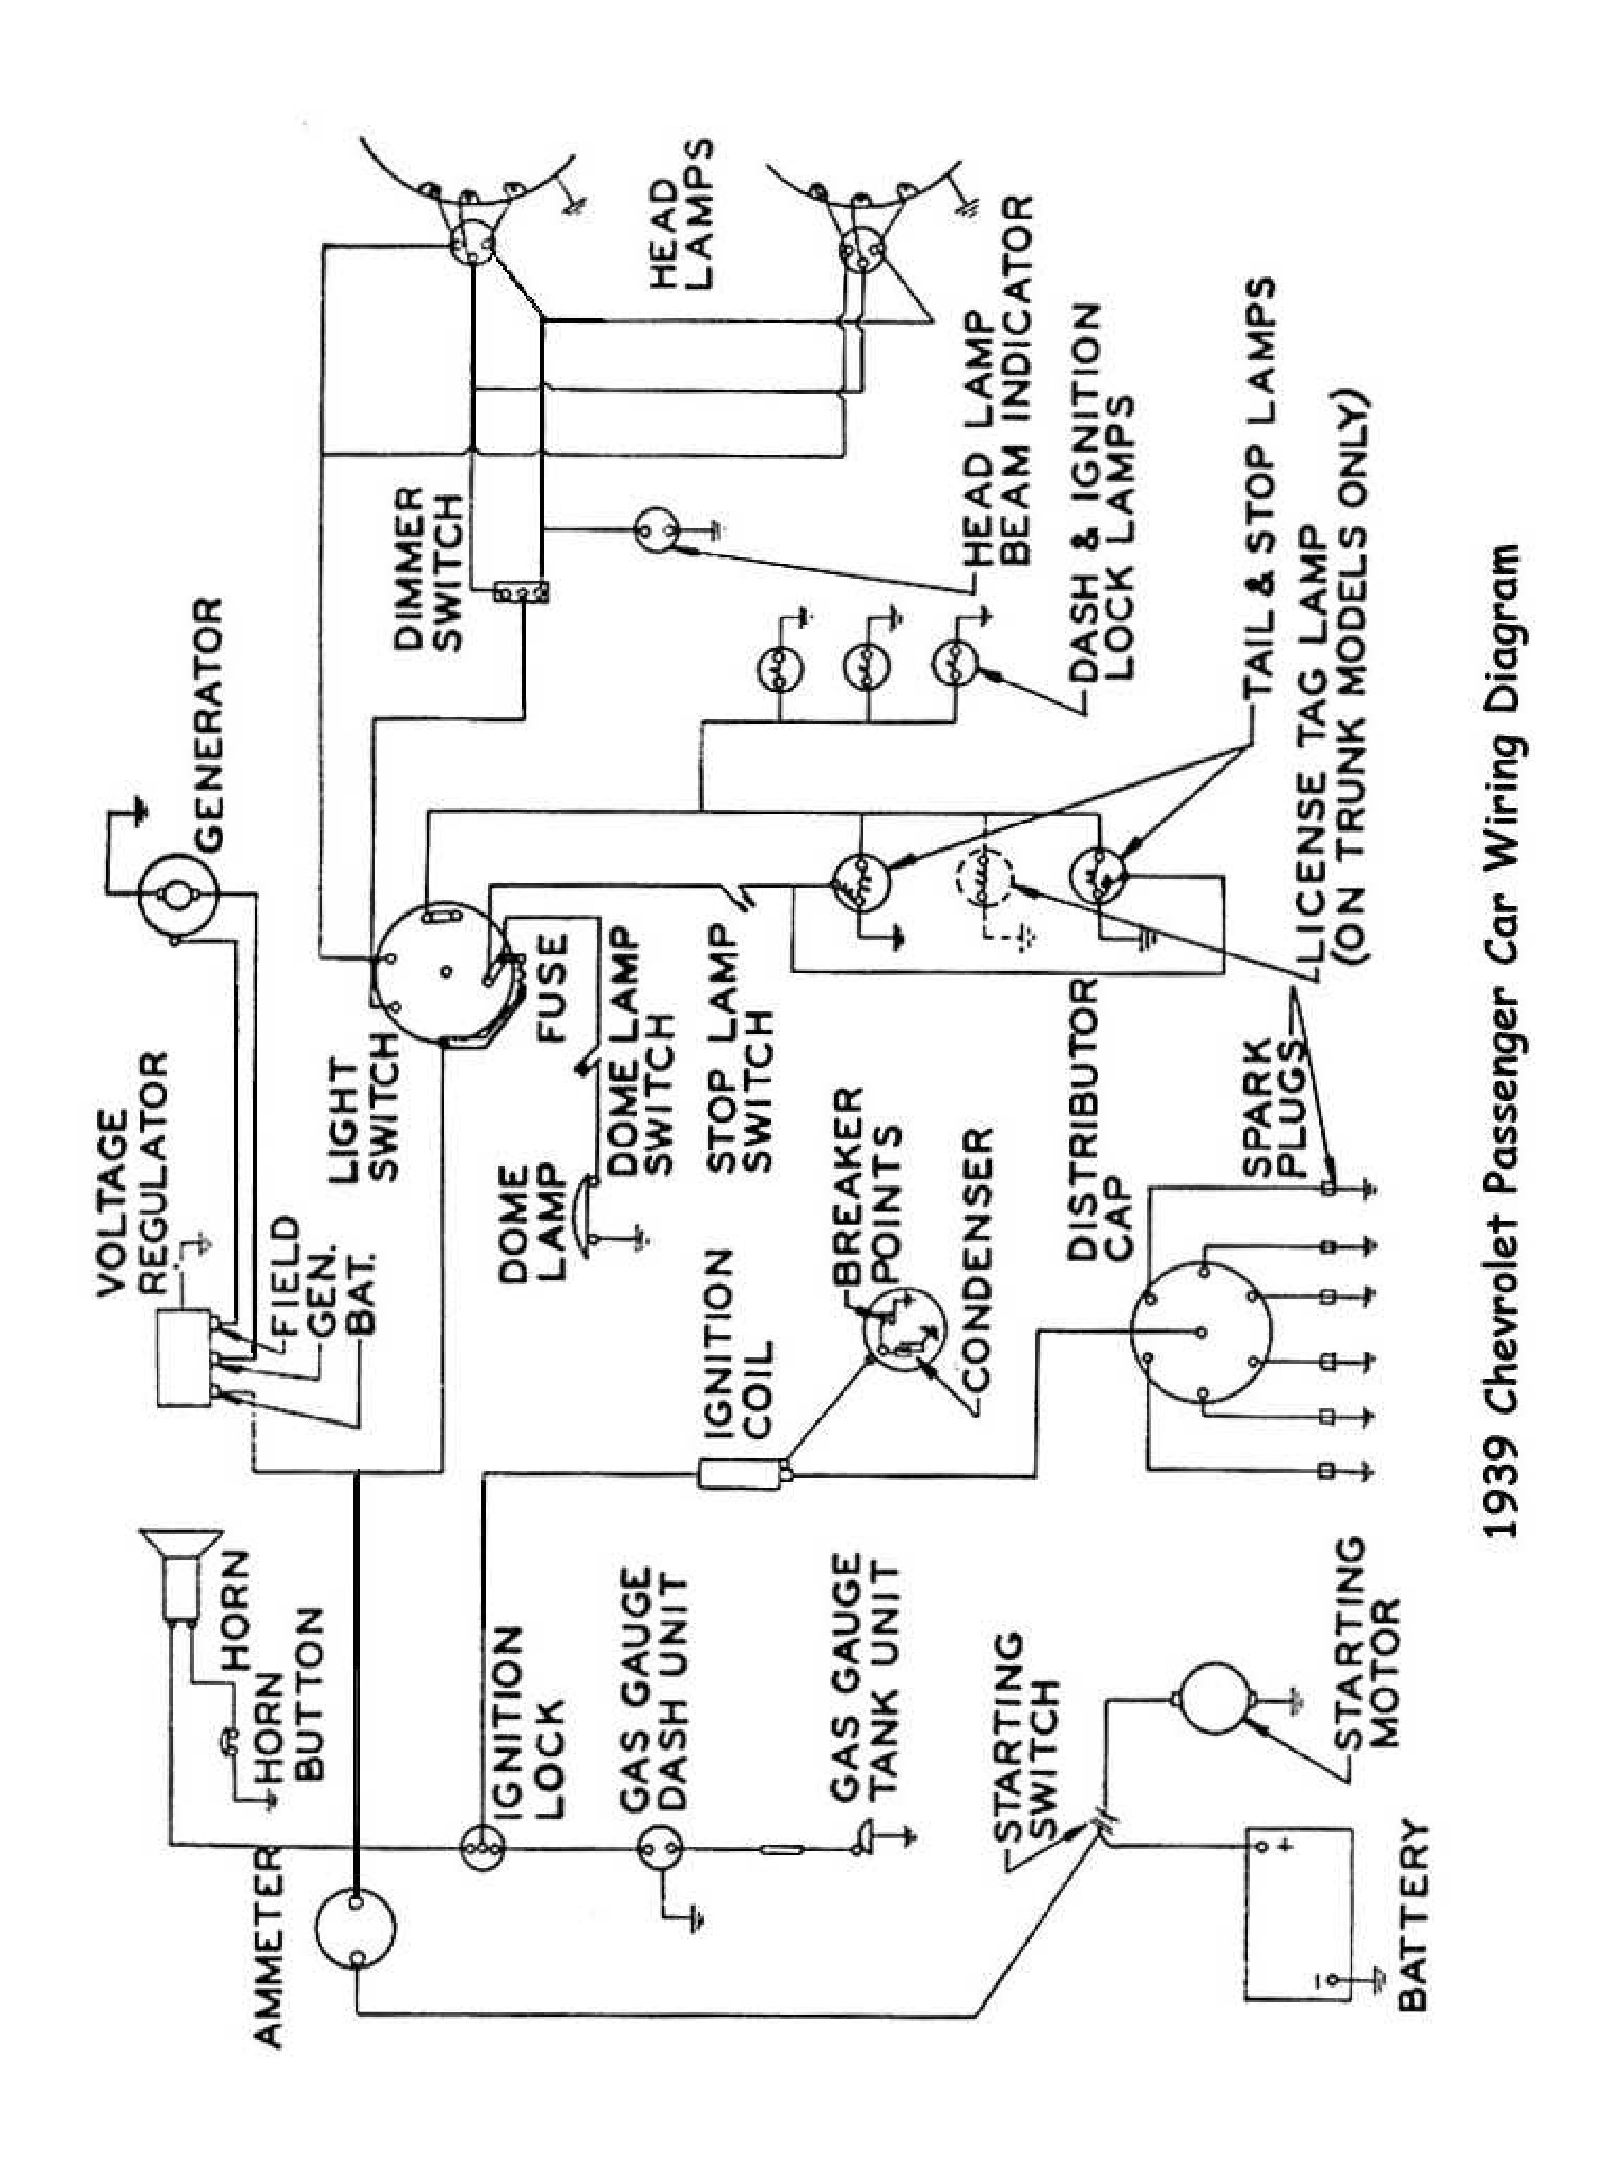 buick wiring diagrams online wiring library 1993 Grand Marquis Fuse Box 1927 buick wiring diagram wiring diagram schemes 72 buick wiring diagrams online 1927 buick wiring diagram